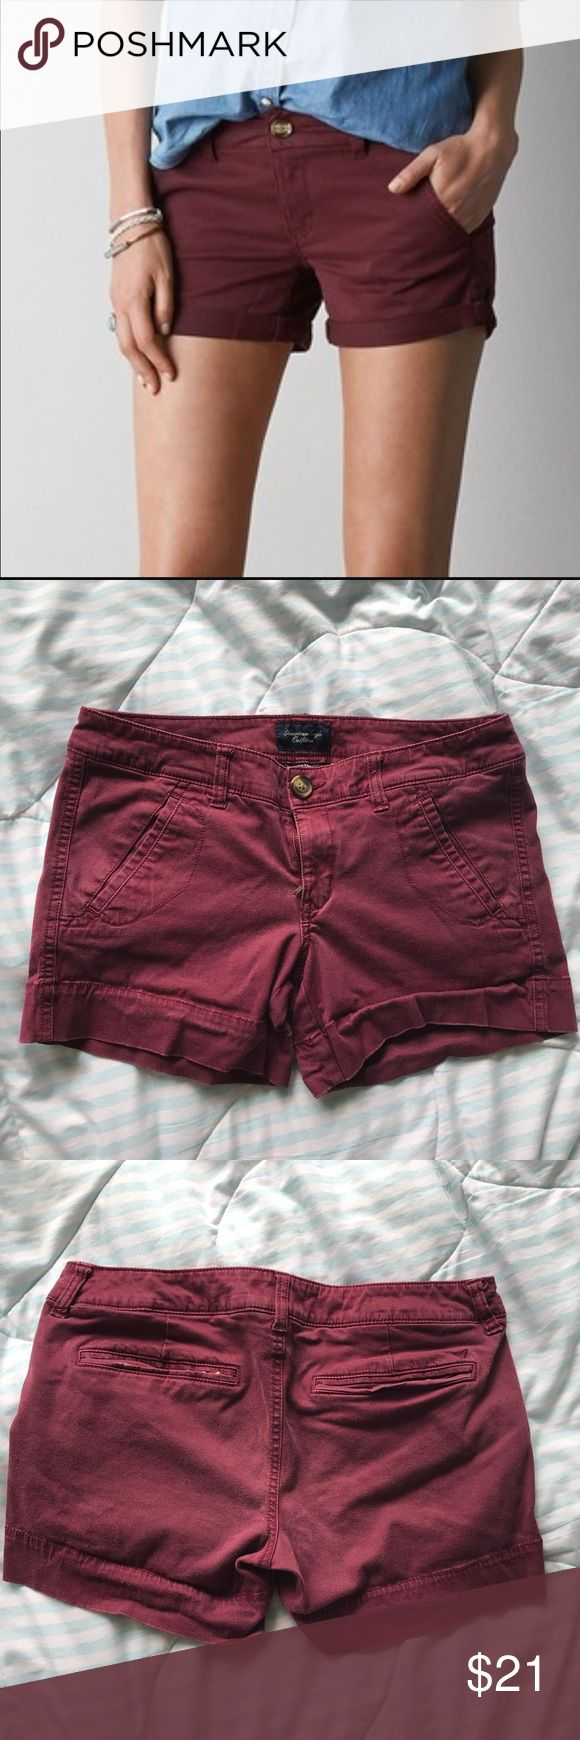 American Eagle Maroon Shortie Stretchy maroon shorts from American Eagle Outfitters! Comfortable and in great condition! Size 6   🌴ships from Hawaii🌴 • no trades • mannequin models only • make me an offer • save with bundles • feel free to ask me anything! American Eagle Outfitters Shorts